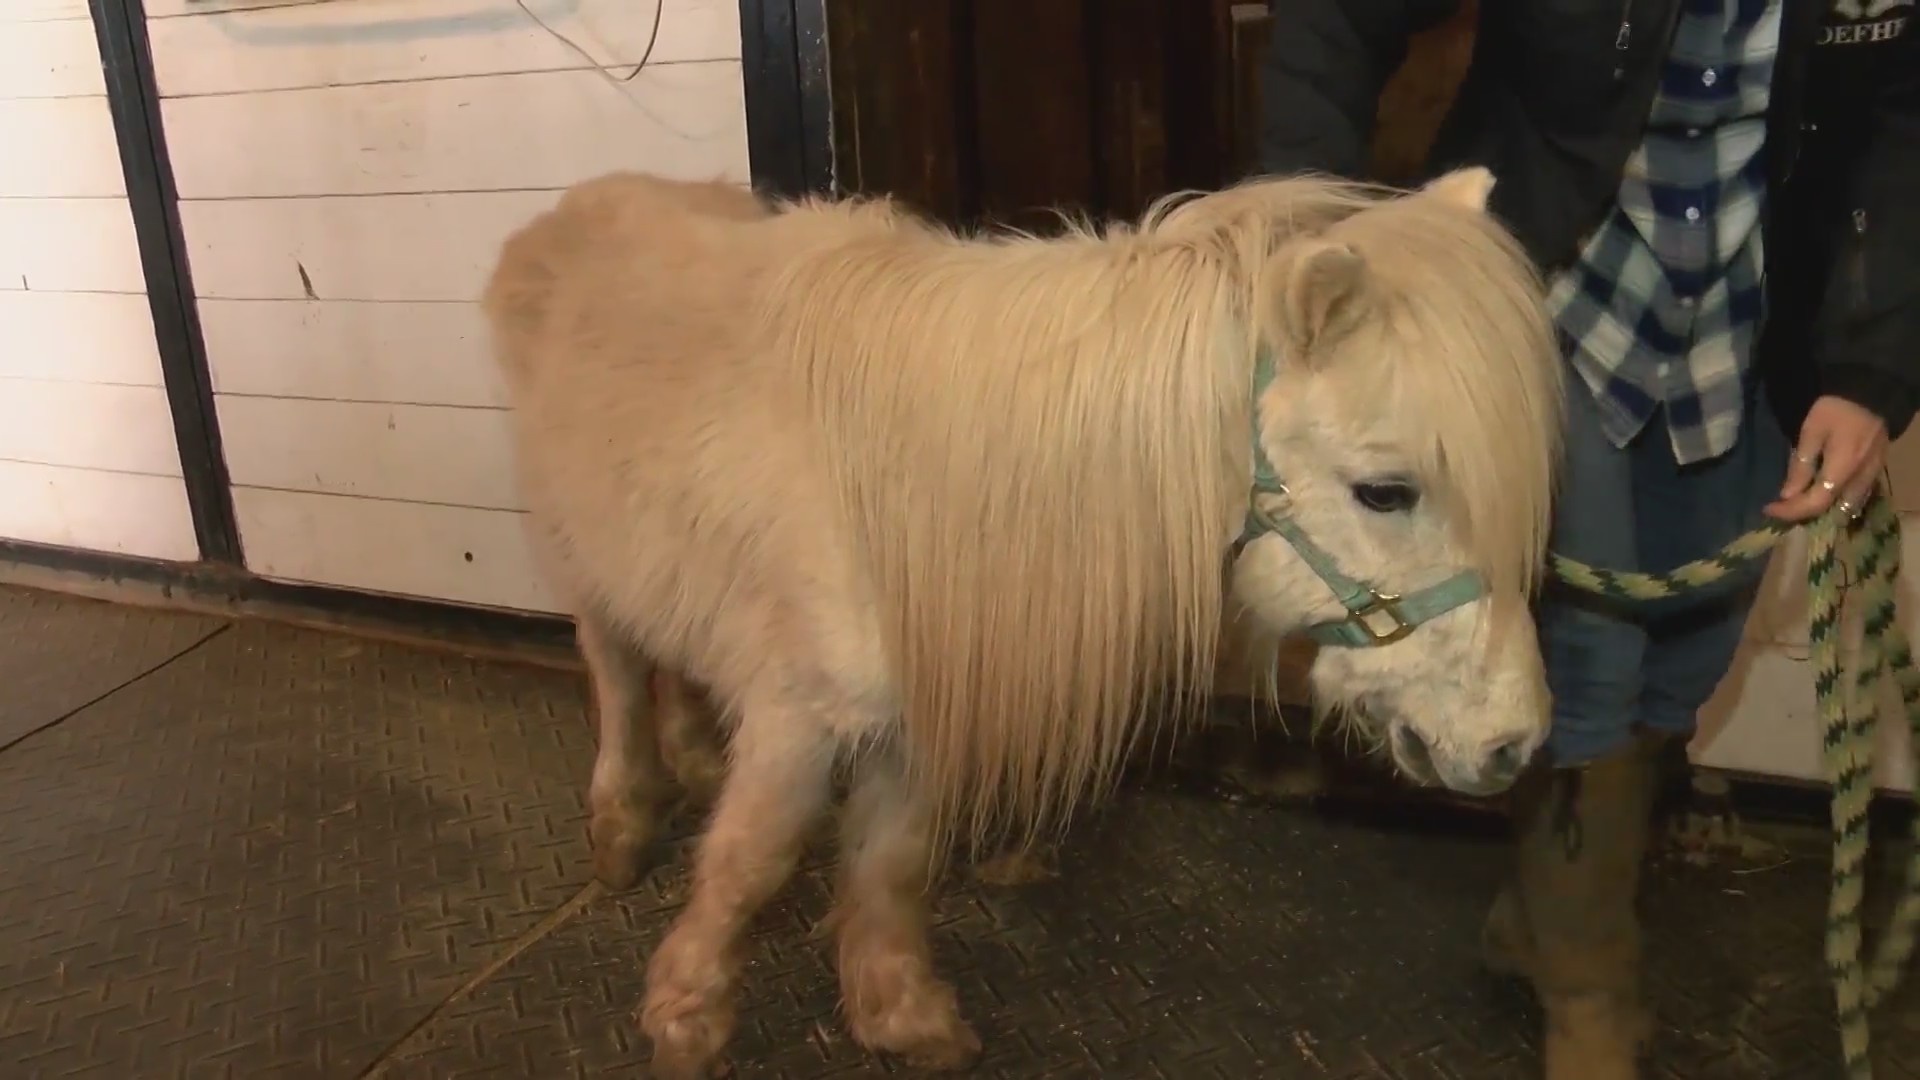 Horse_abuse_0_20181128231356